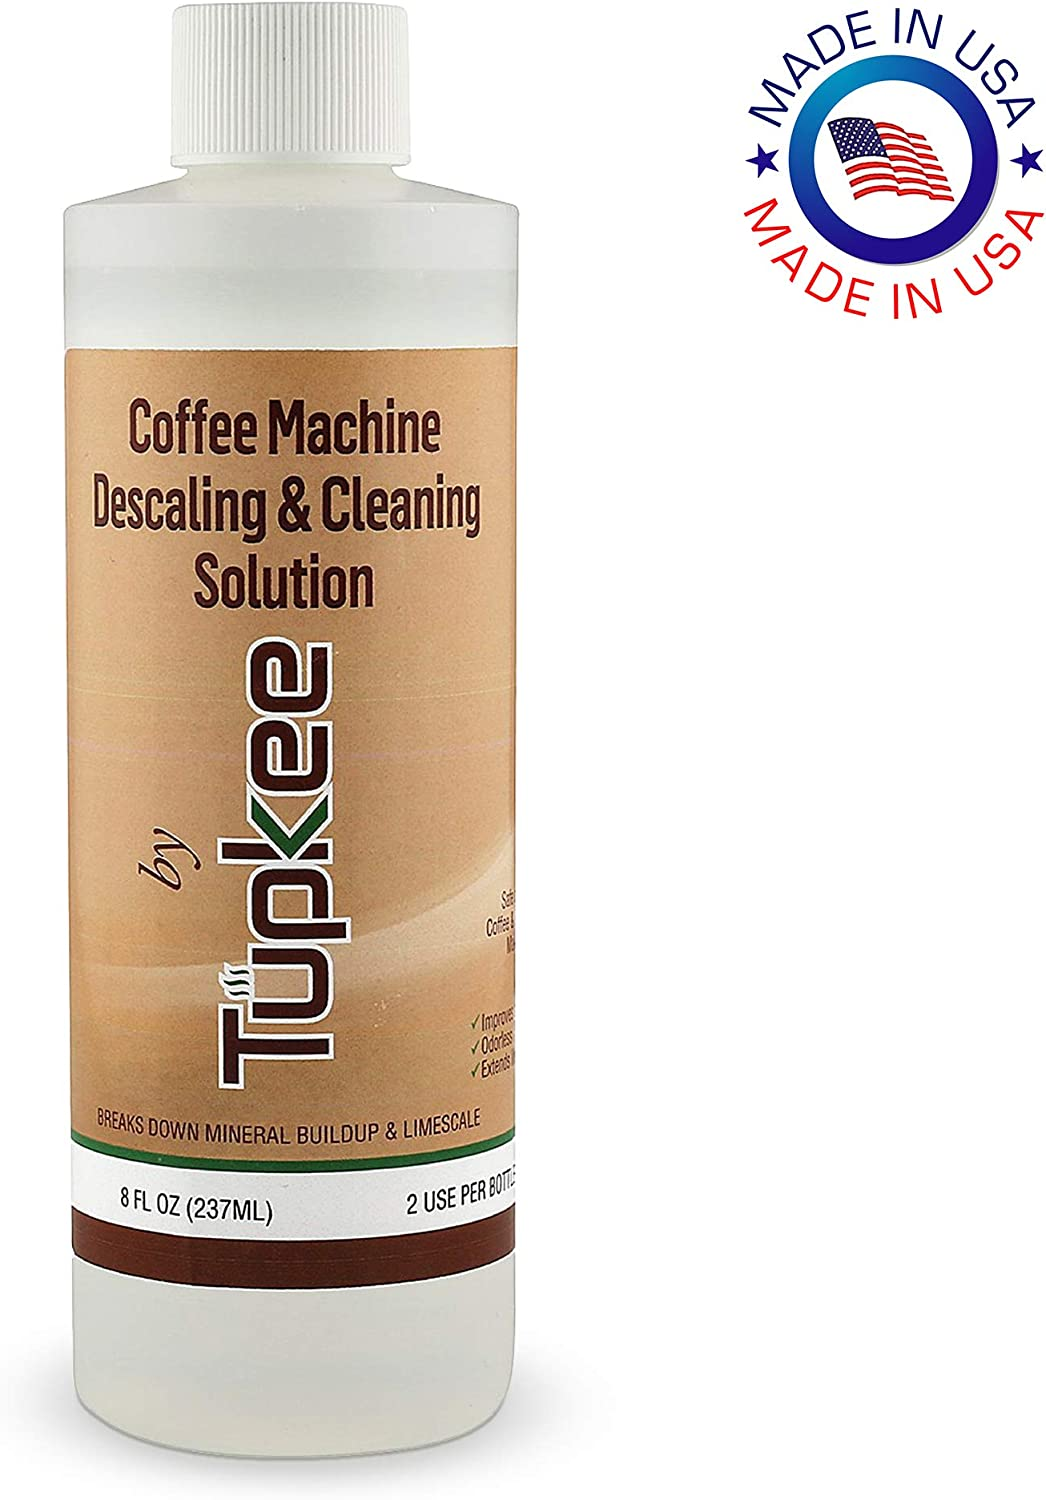 Tupkee Coffee Machine Descaling Solution – Universal, For Drip Coffee Maker, nespresso, delonghi, and Keurig Coffee Machines Descaler & Cleaning Solution, Breaks Down Mineral Buildup and Limescale 71jUDT-EUdL